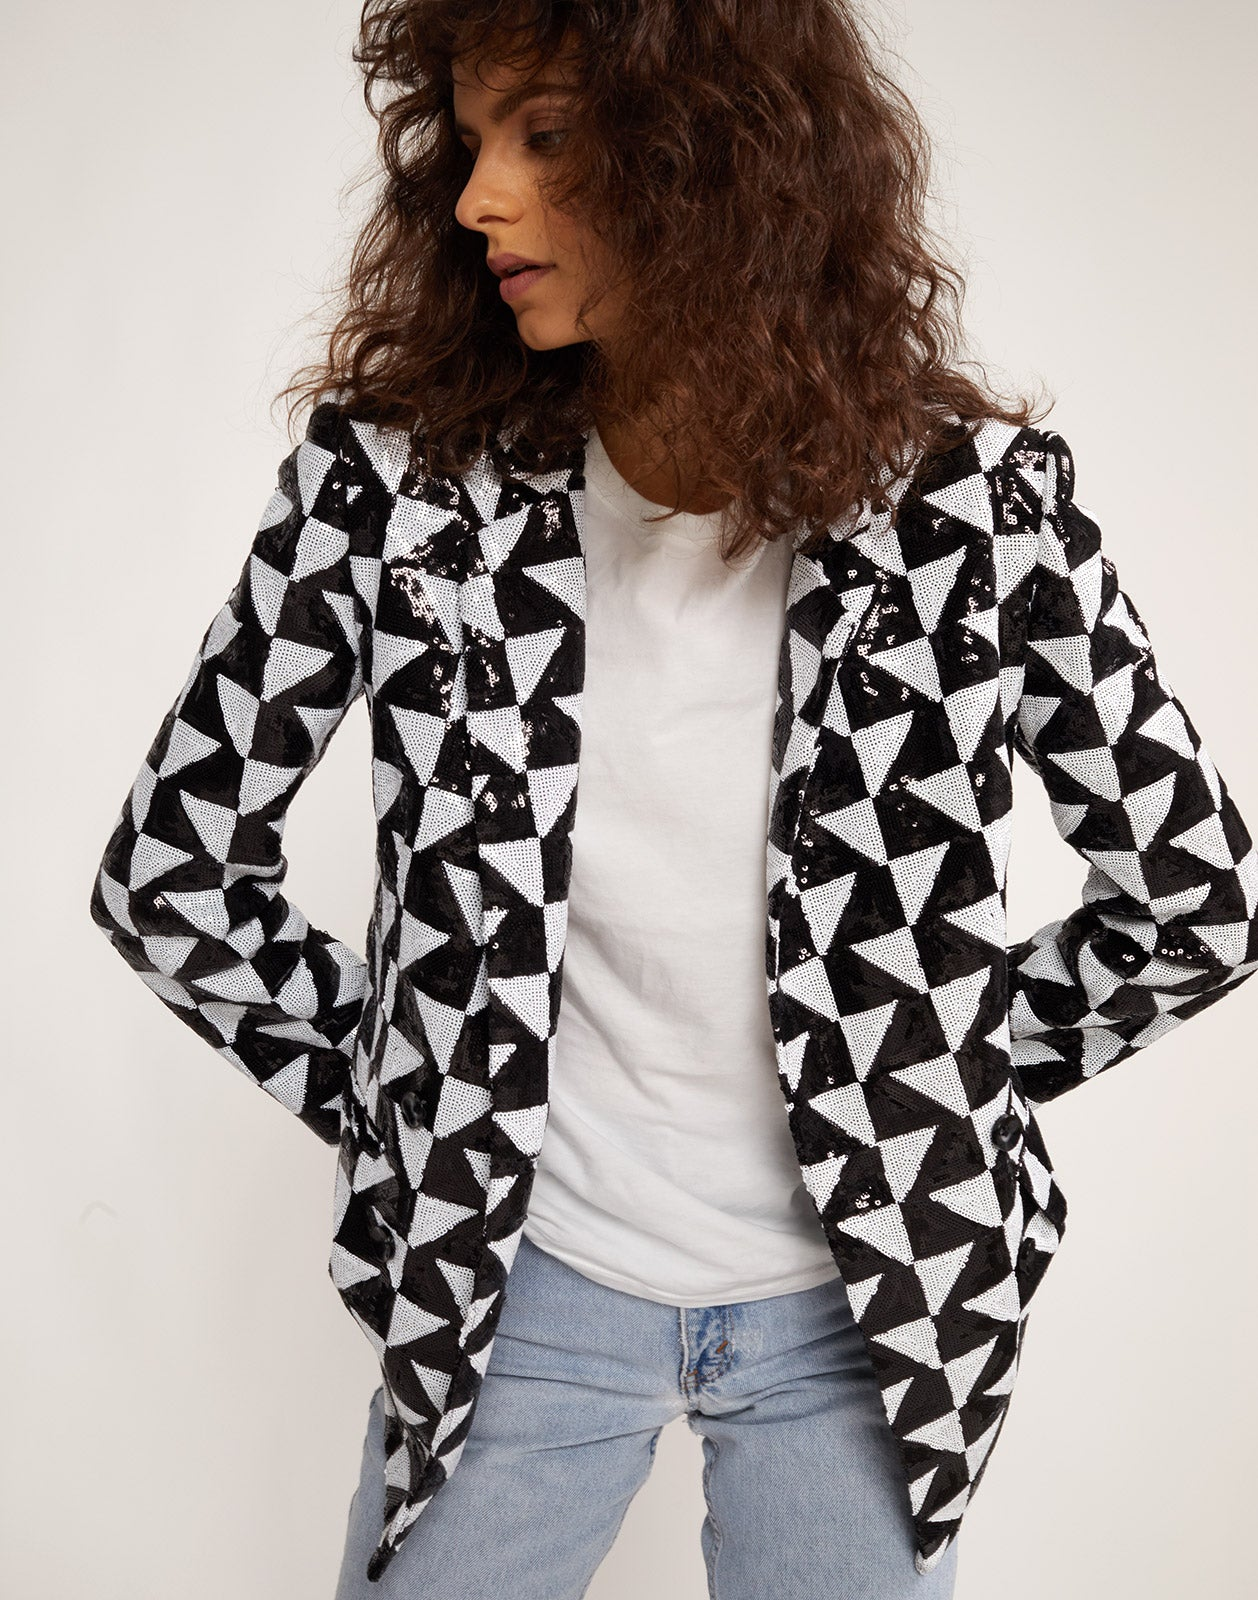 Illusion geometric sequin blazer worn with a white t-shirt.